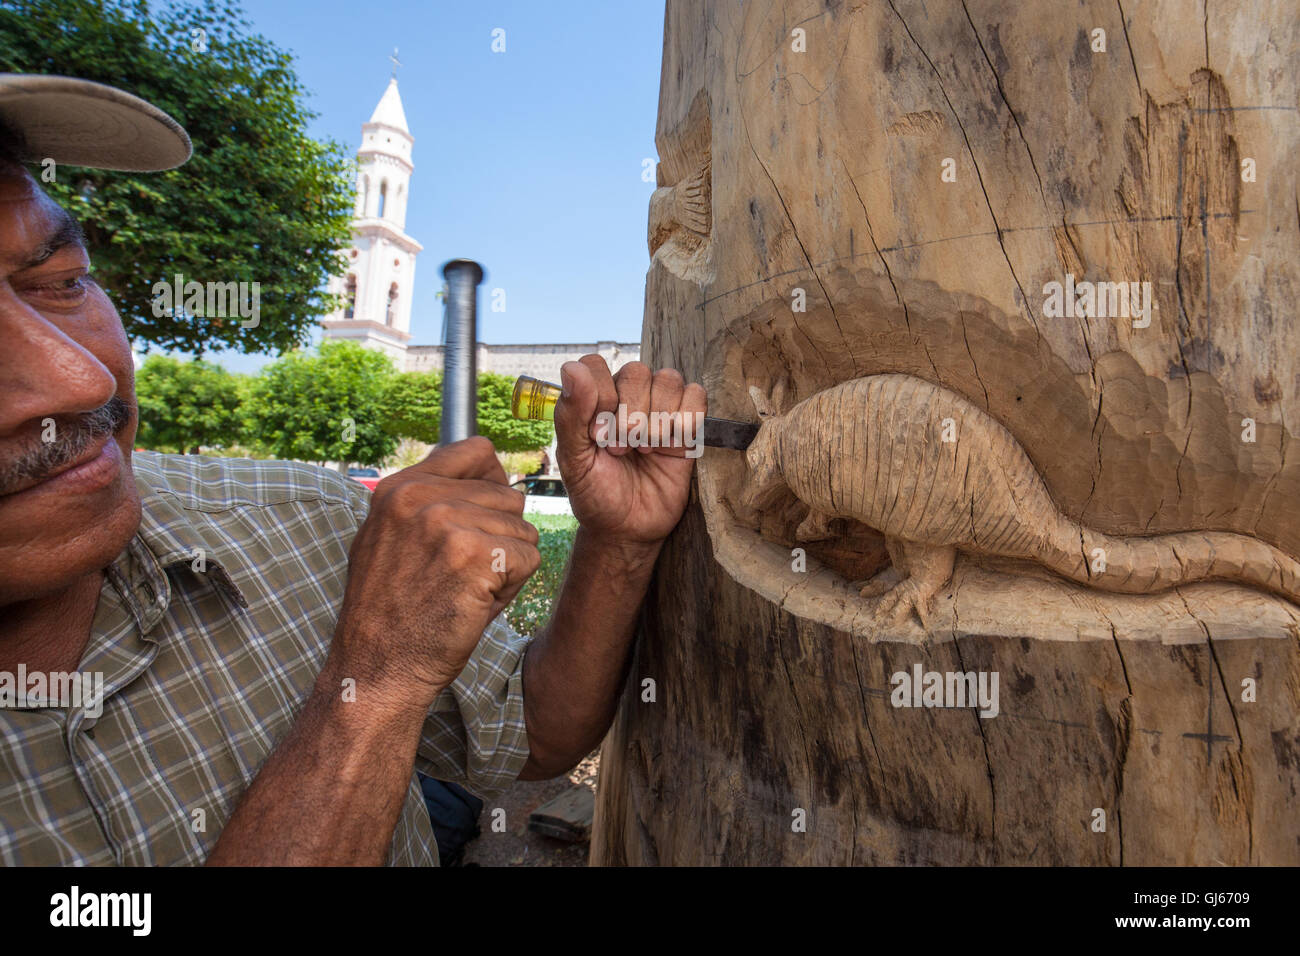 Artisan Jesus Ramos Cota works on a carving in the plaza of el Fuerte, Sinaloa, Mexico. - Stock Image